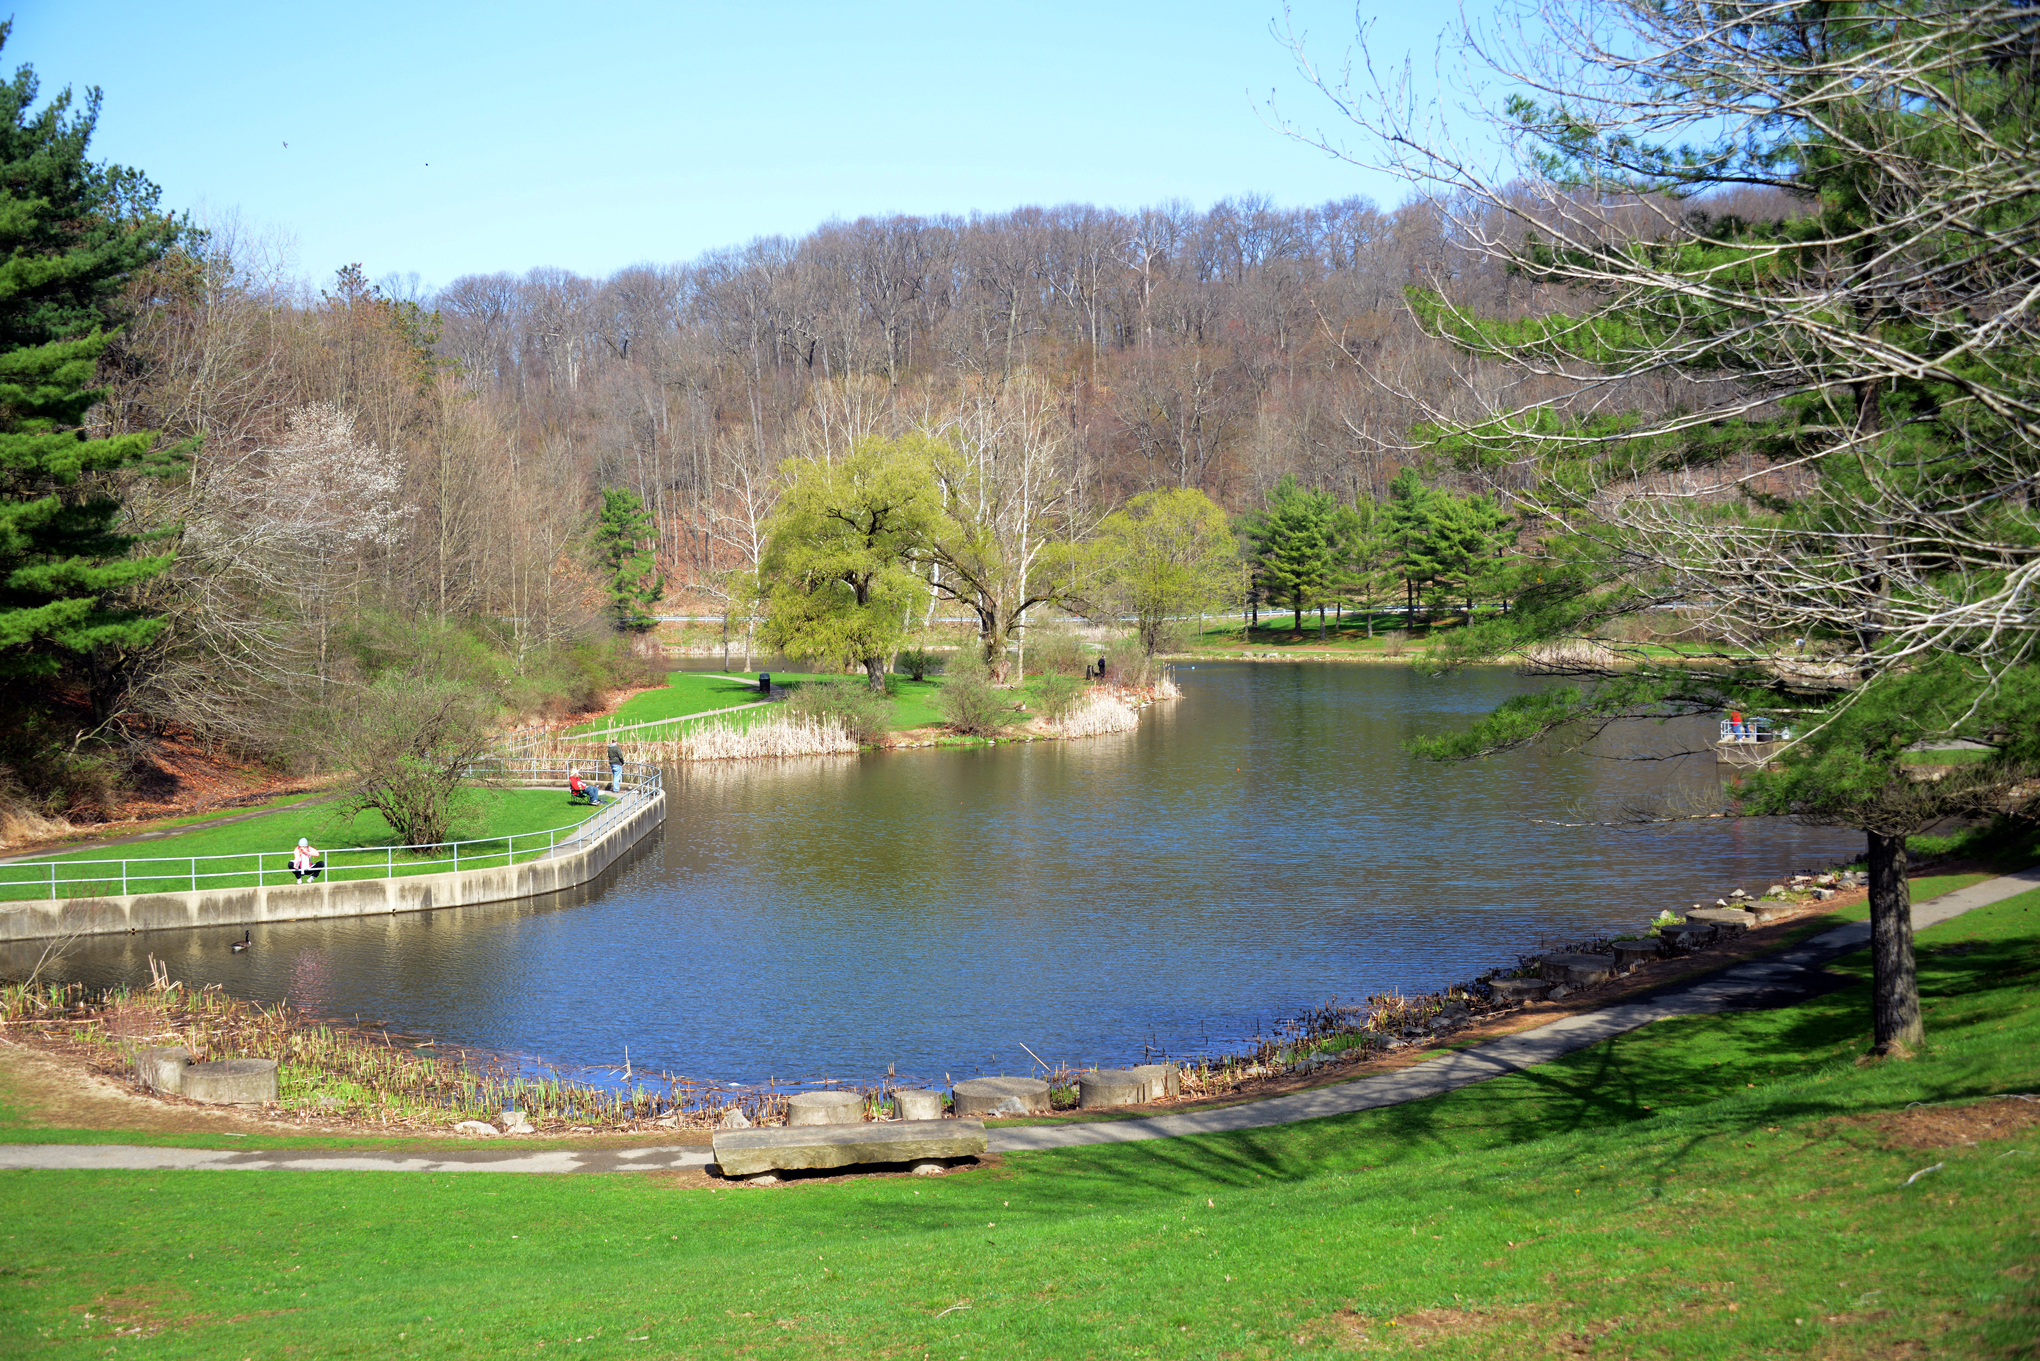 20140426lfLakeLocal02-11 Deer Lakes Park in Tarentum. p